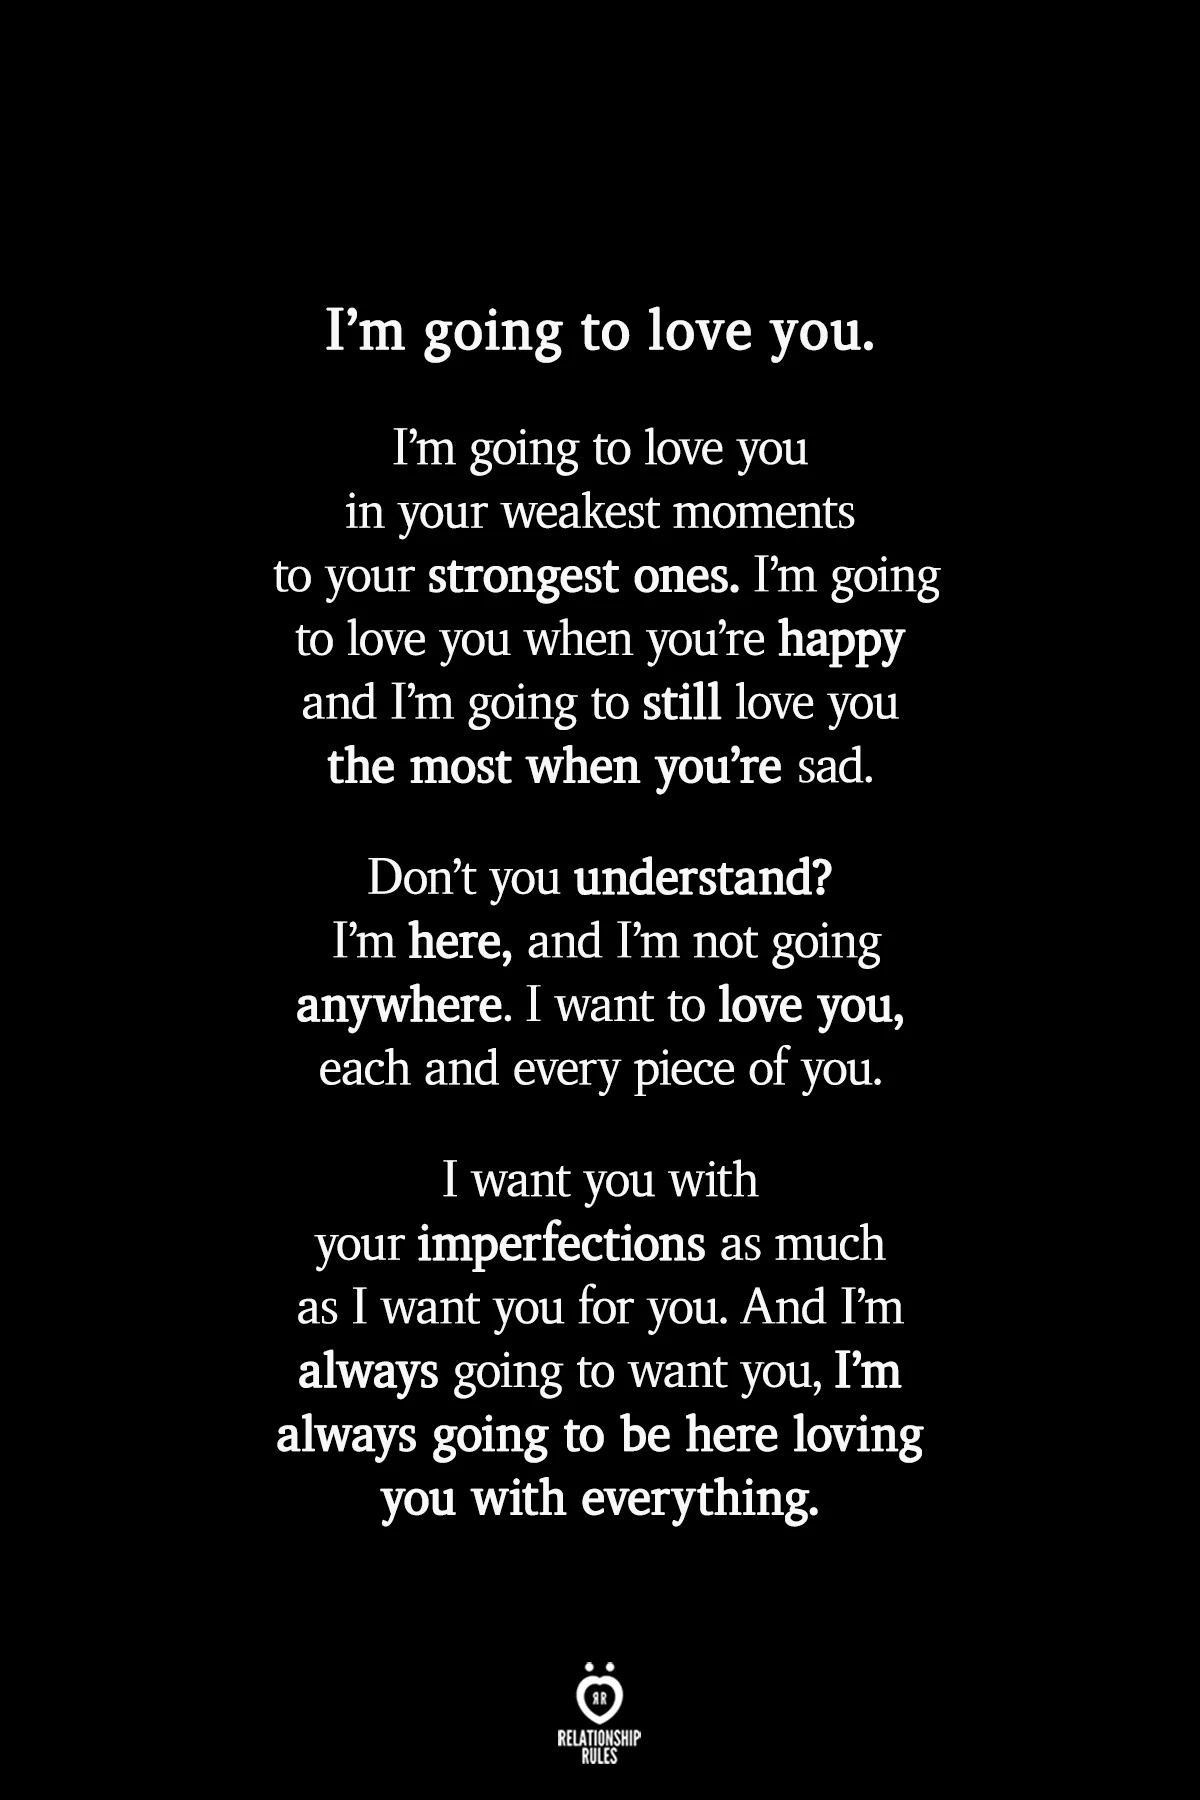 I'm going to love you.